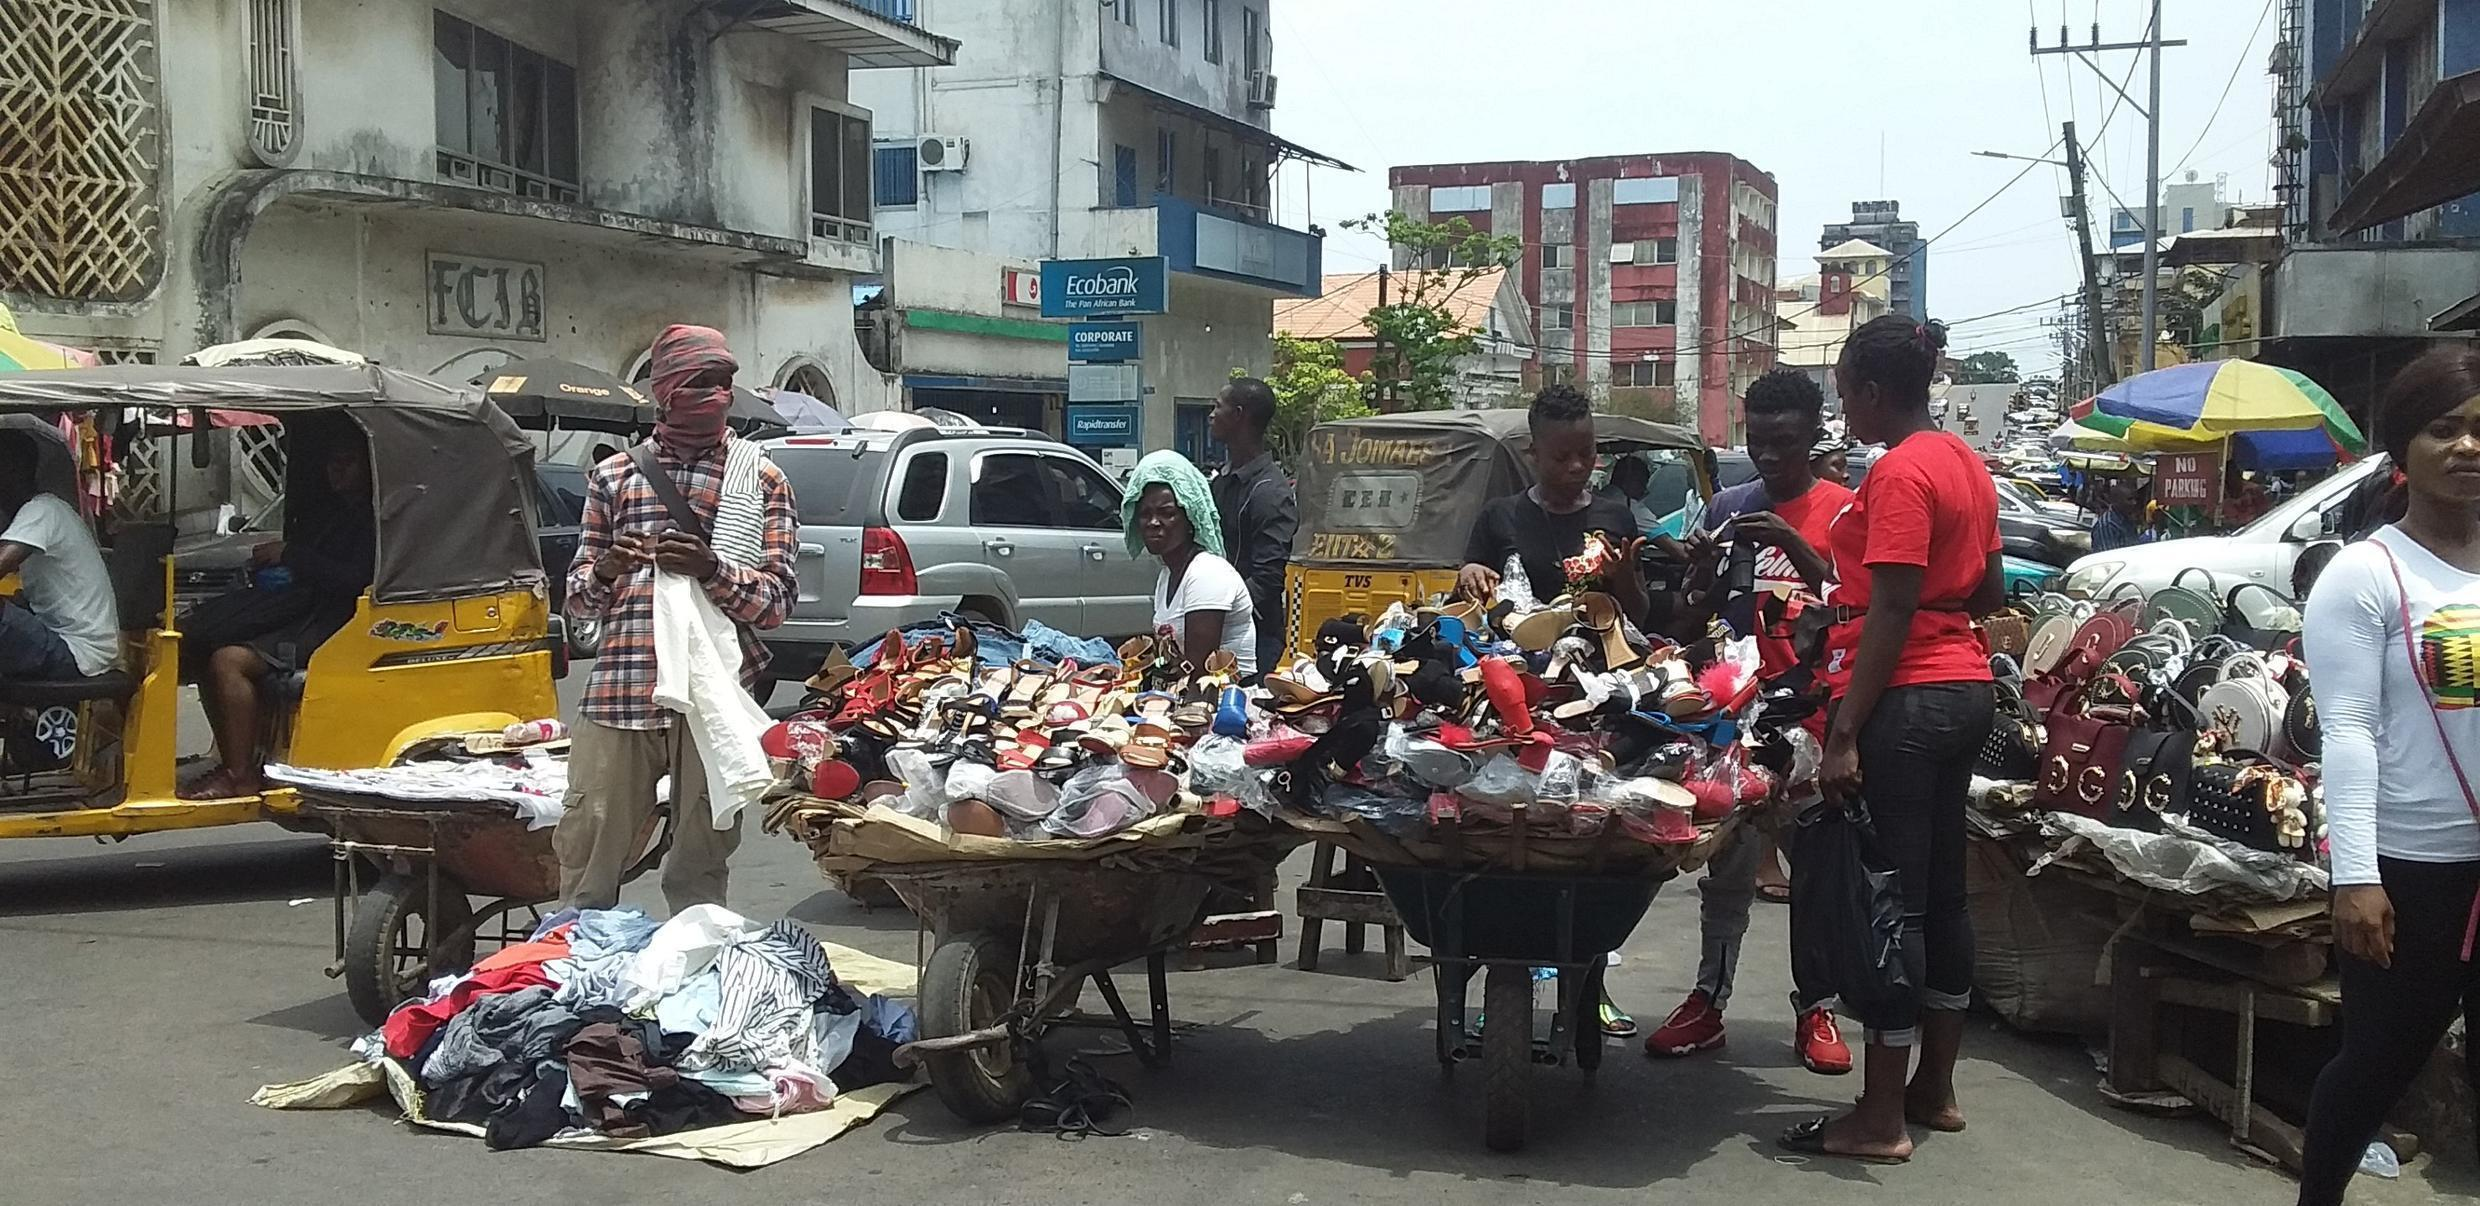 On the streets of Monrovia, Liberia, some people are covering their faces in any way possible to avoid Coronavirus